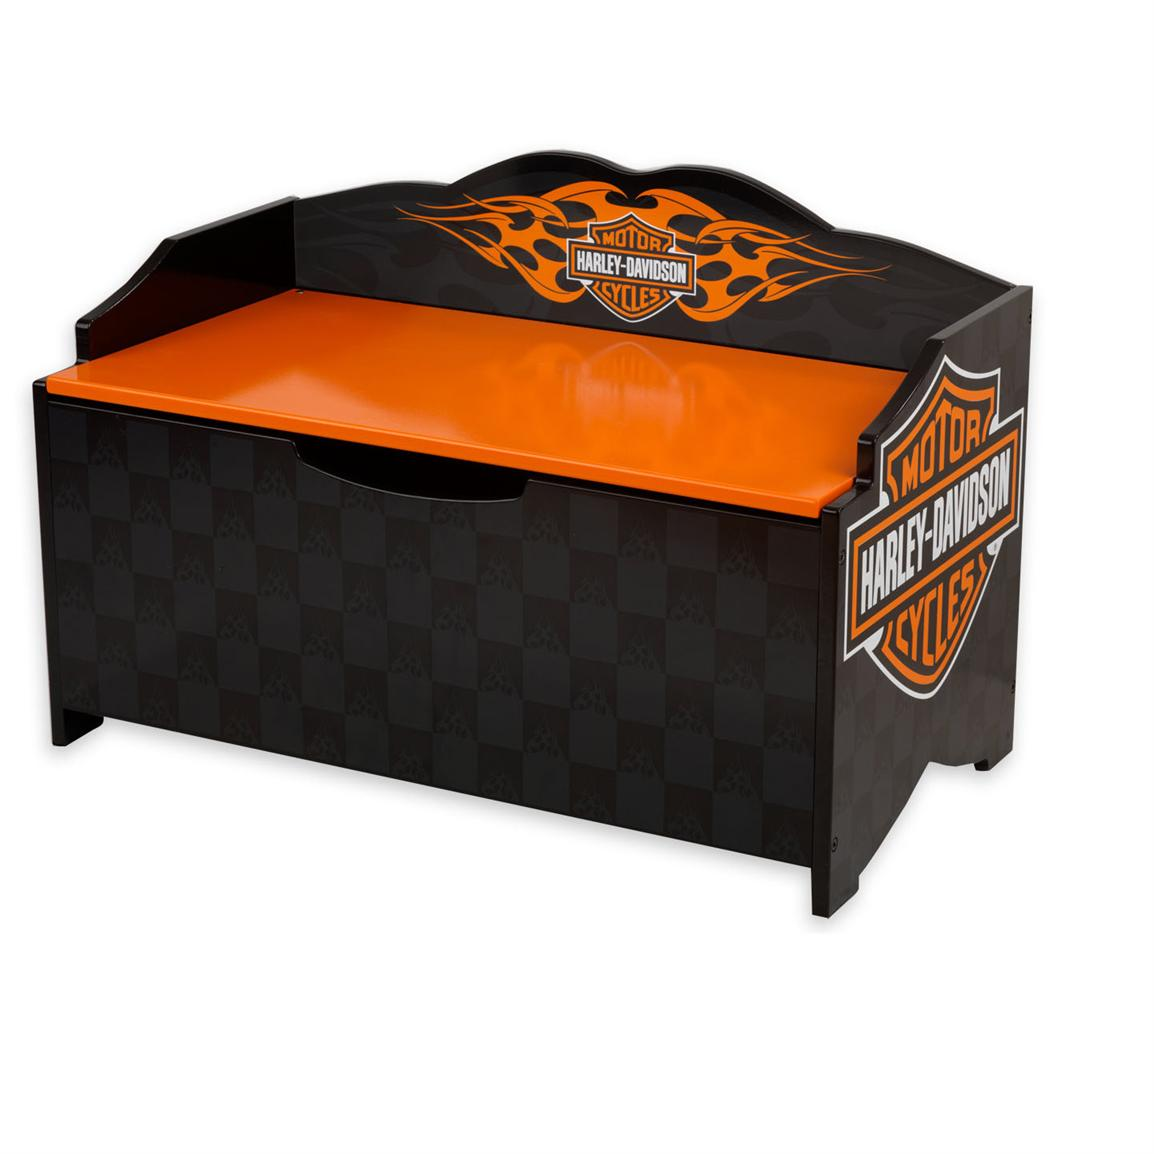 Kidkraft Harley Davidson 174 Flames Toy Box 146100 Kid S